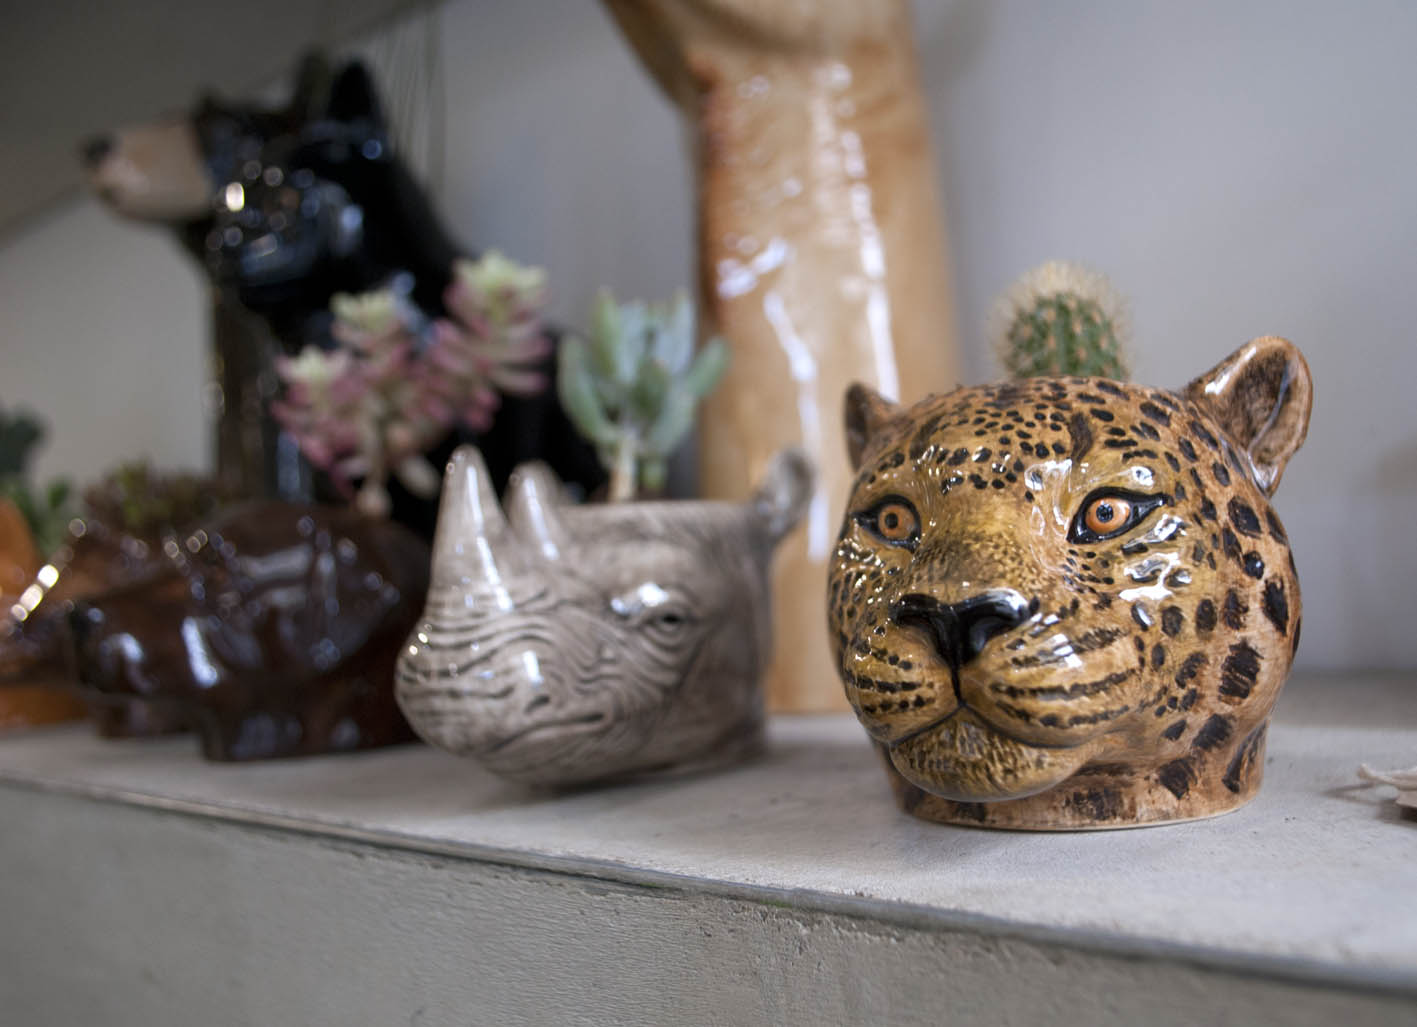 More quirky animal pots